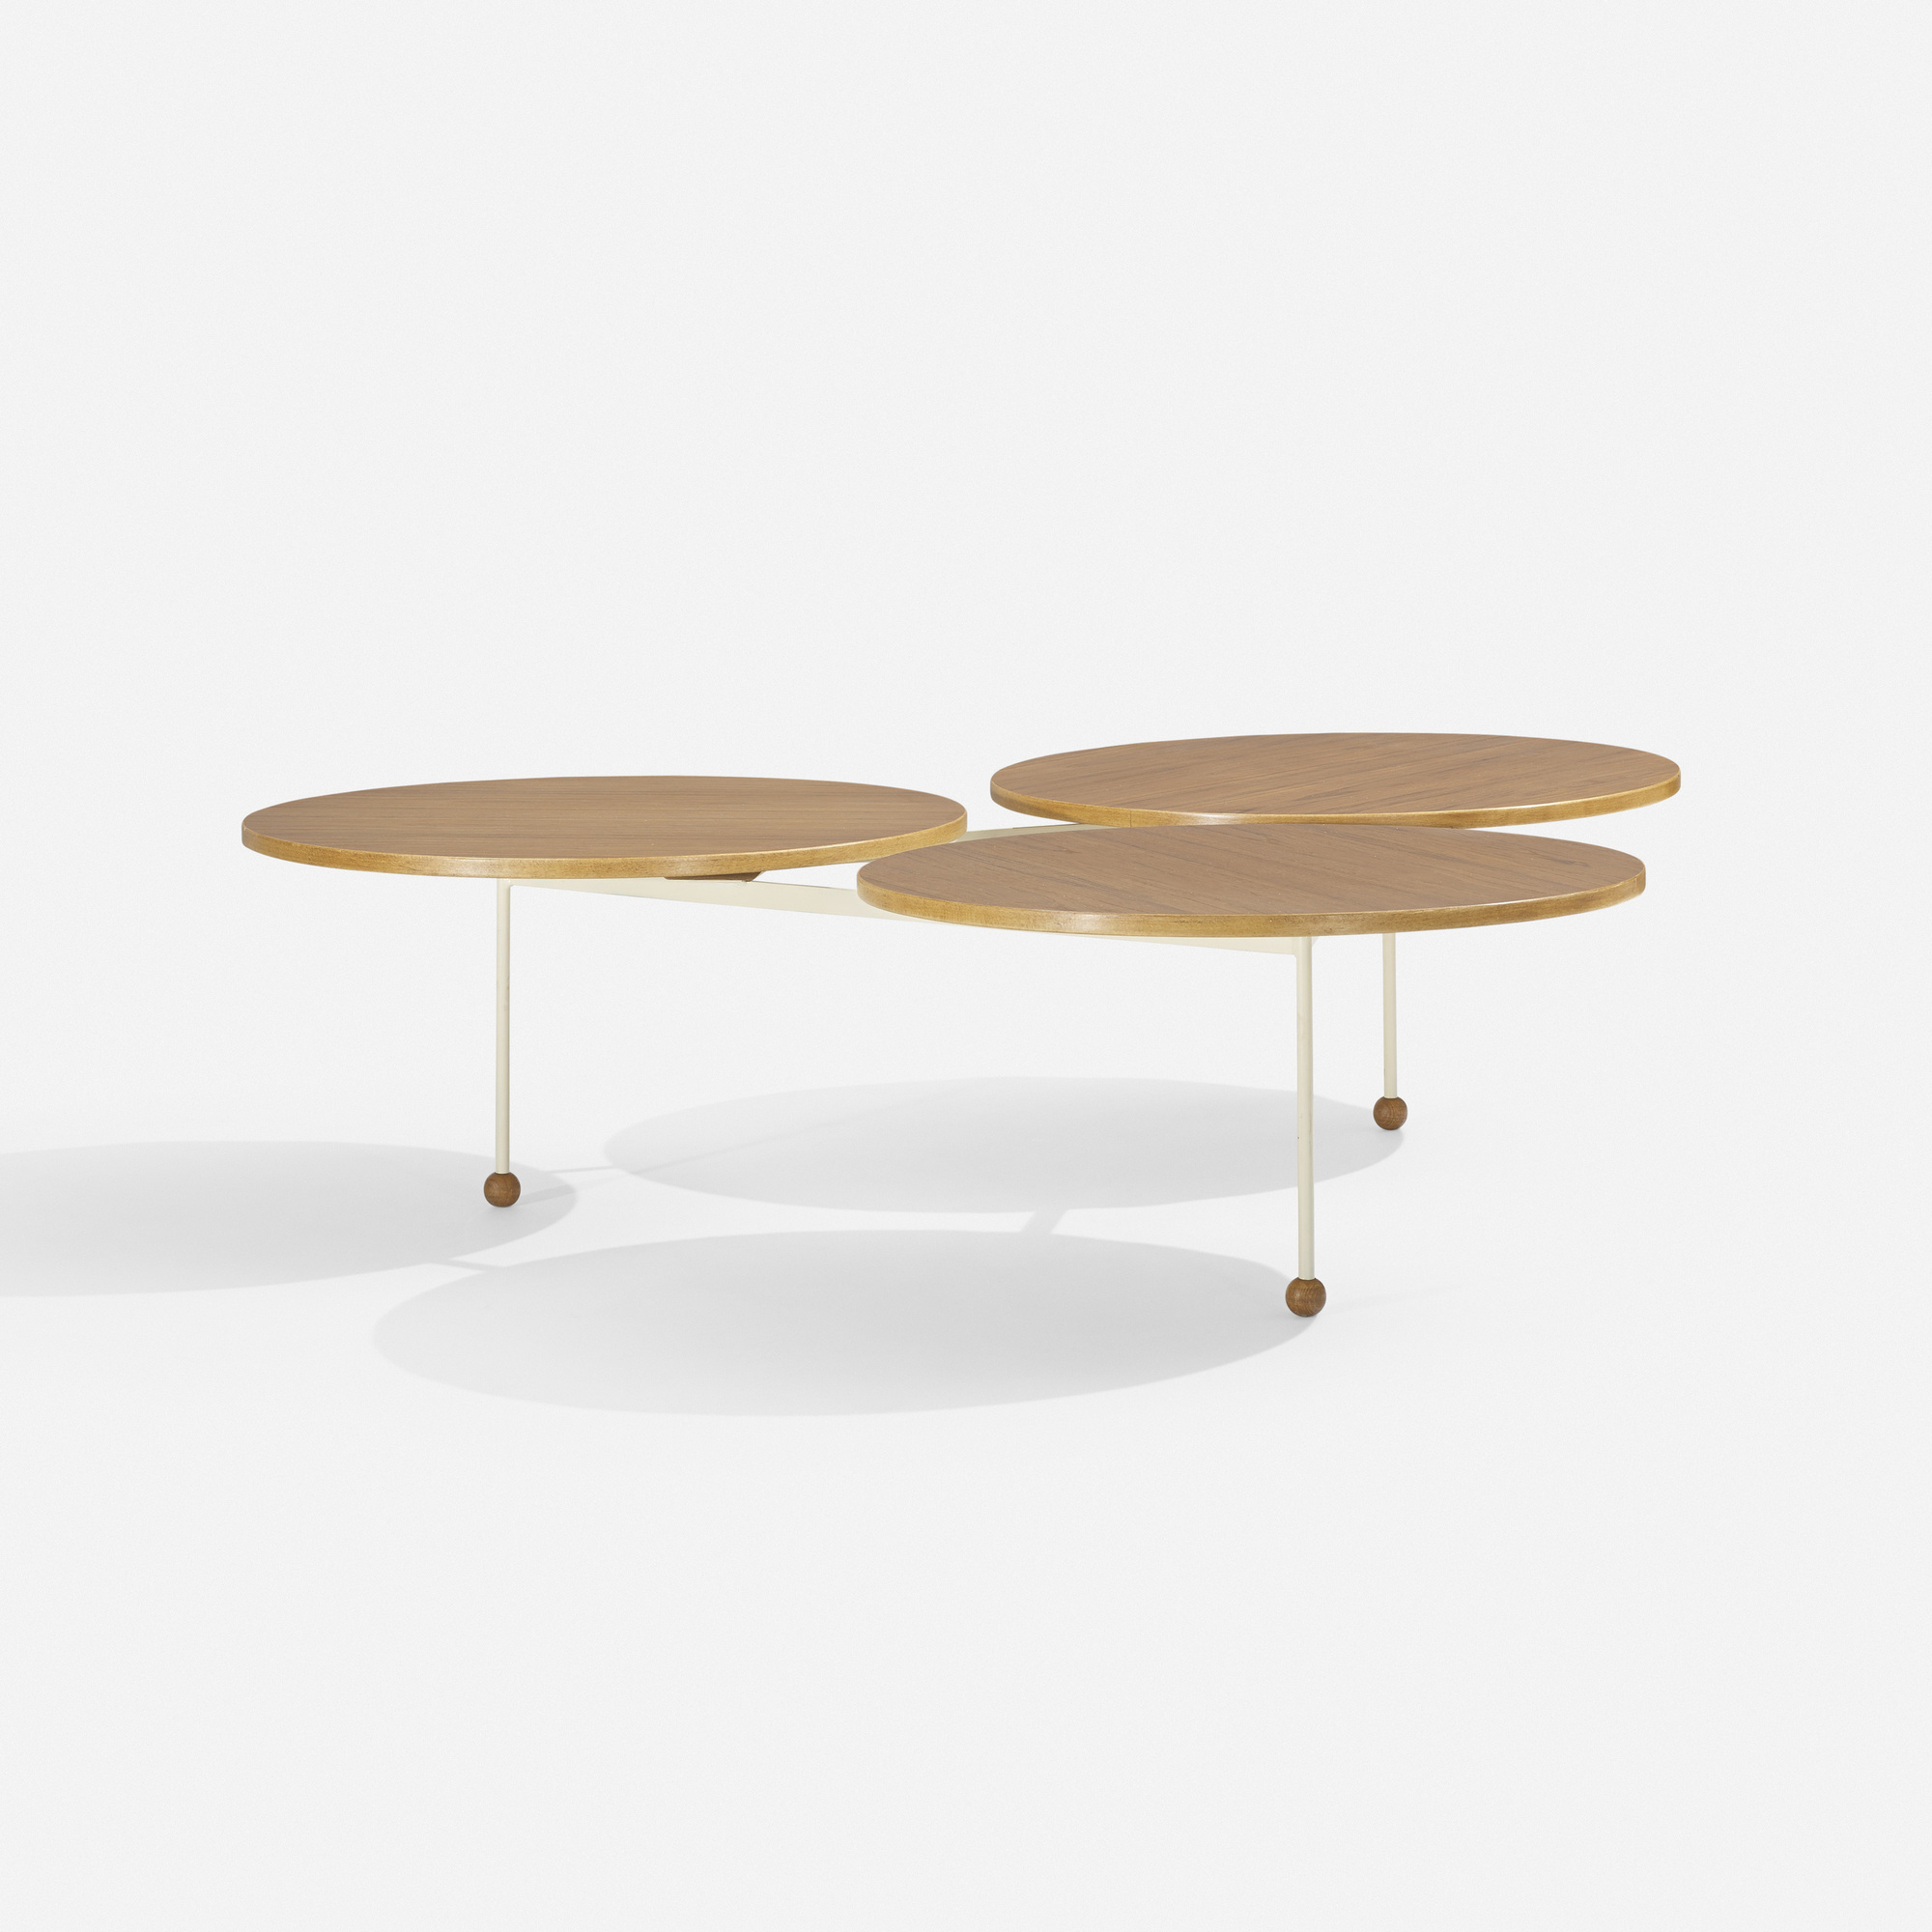 402 After Greta Magnusson Grossman coffee table Mass Modern